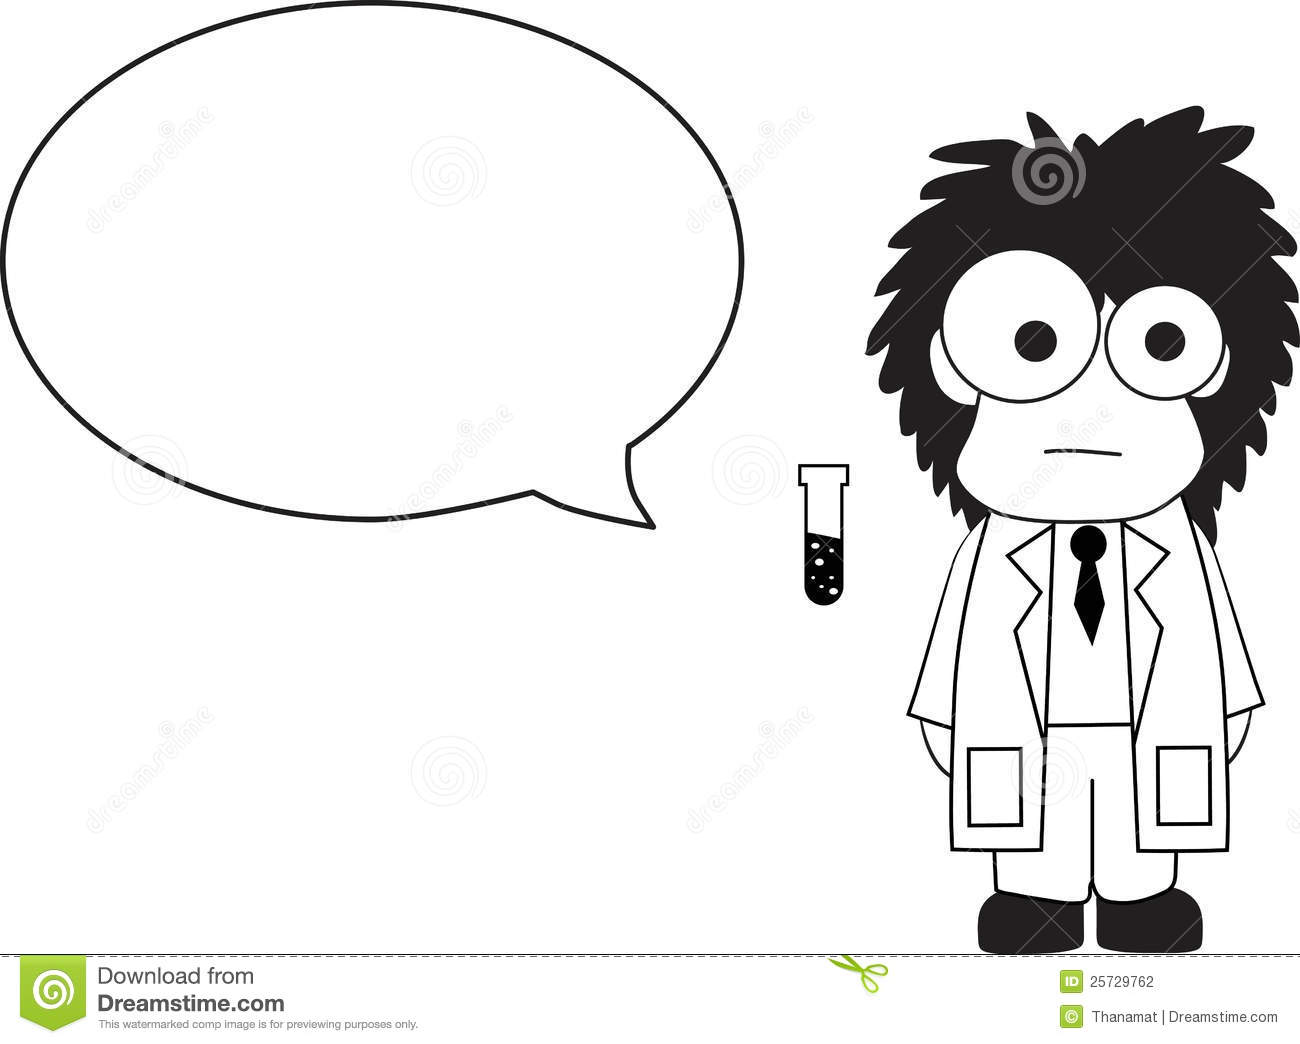 Stock Photos Safety Goggles Vector Illustration Image7636973 as well File methyl anthranilate besides Distilling flasks together with Erlenmeyer flasks joint additionally Stock Photography Scientist Cartoon Image25729762. on flask usage